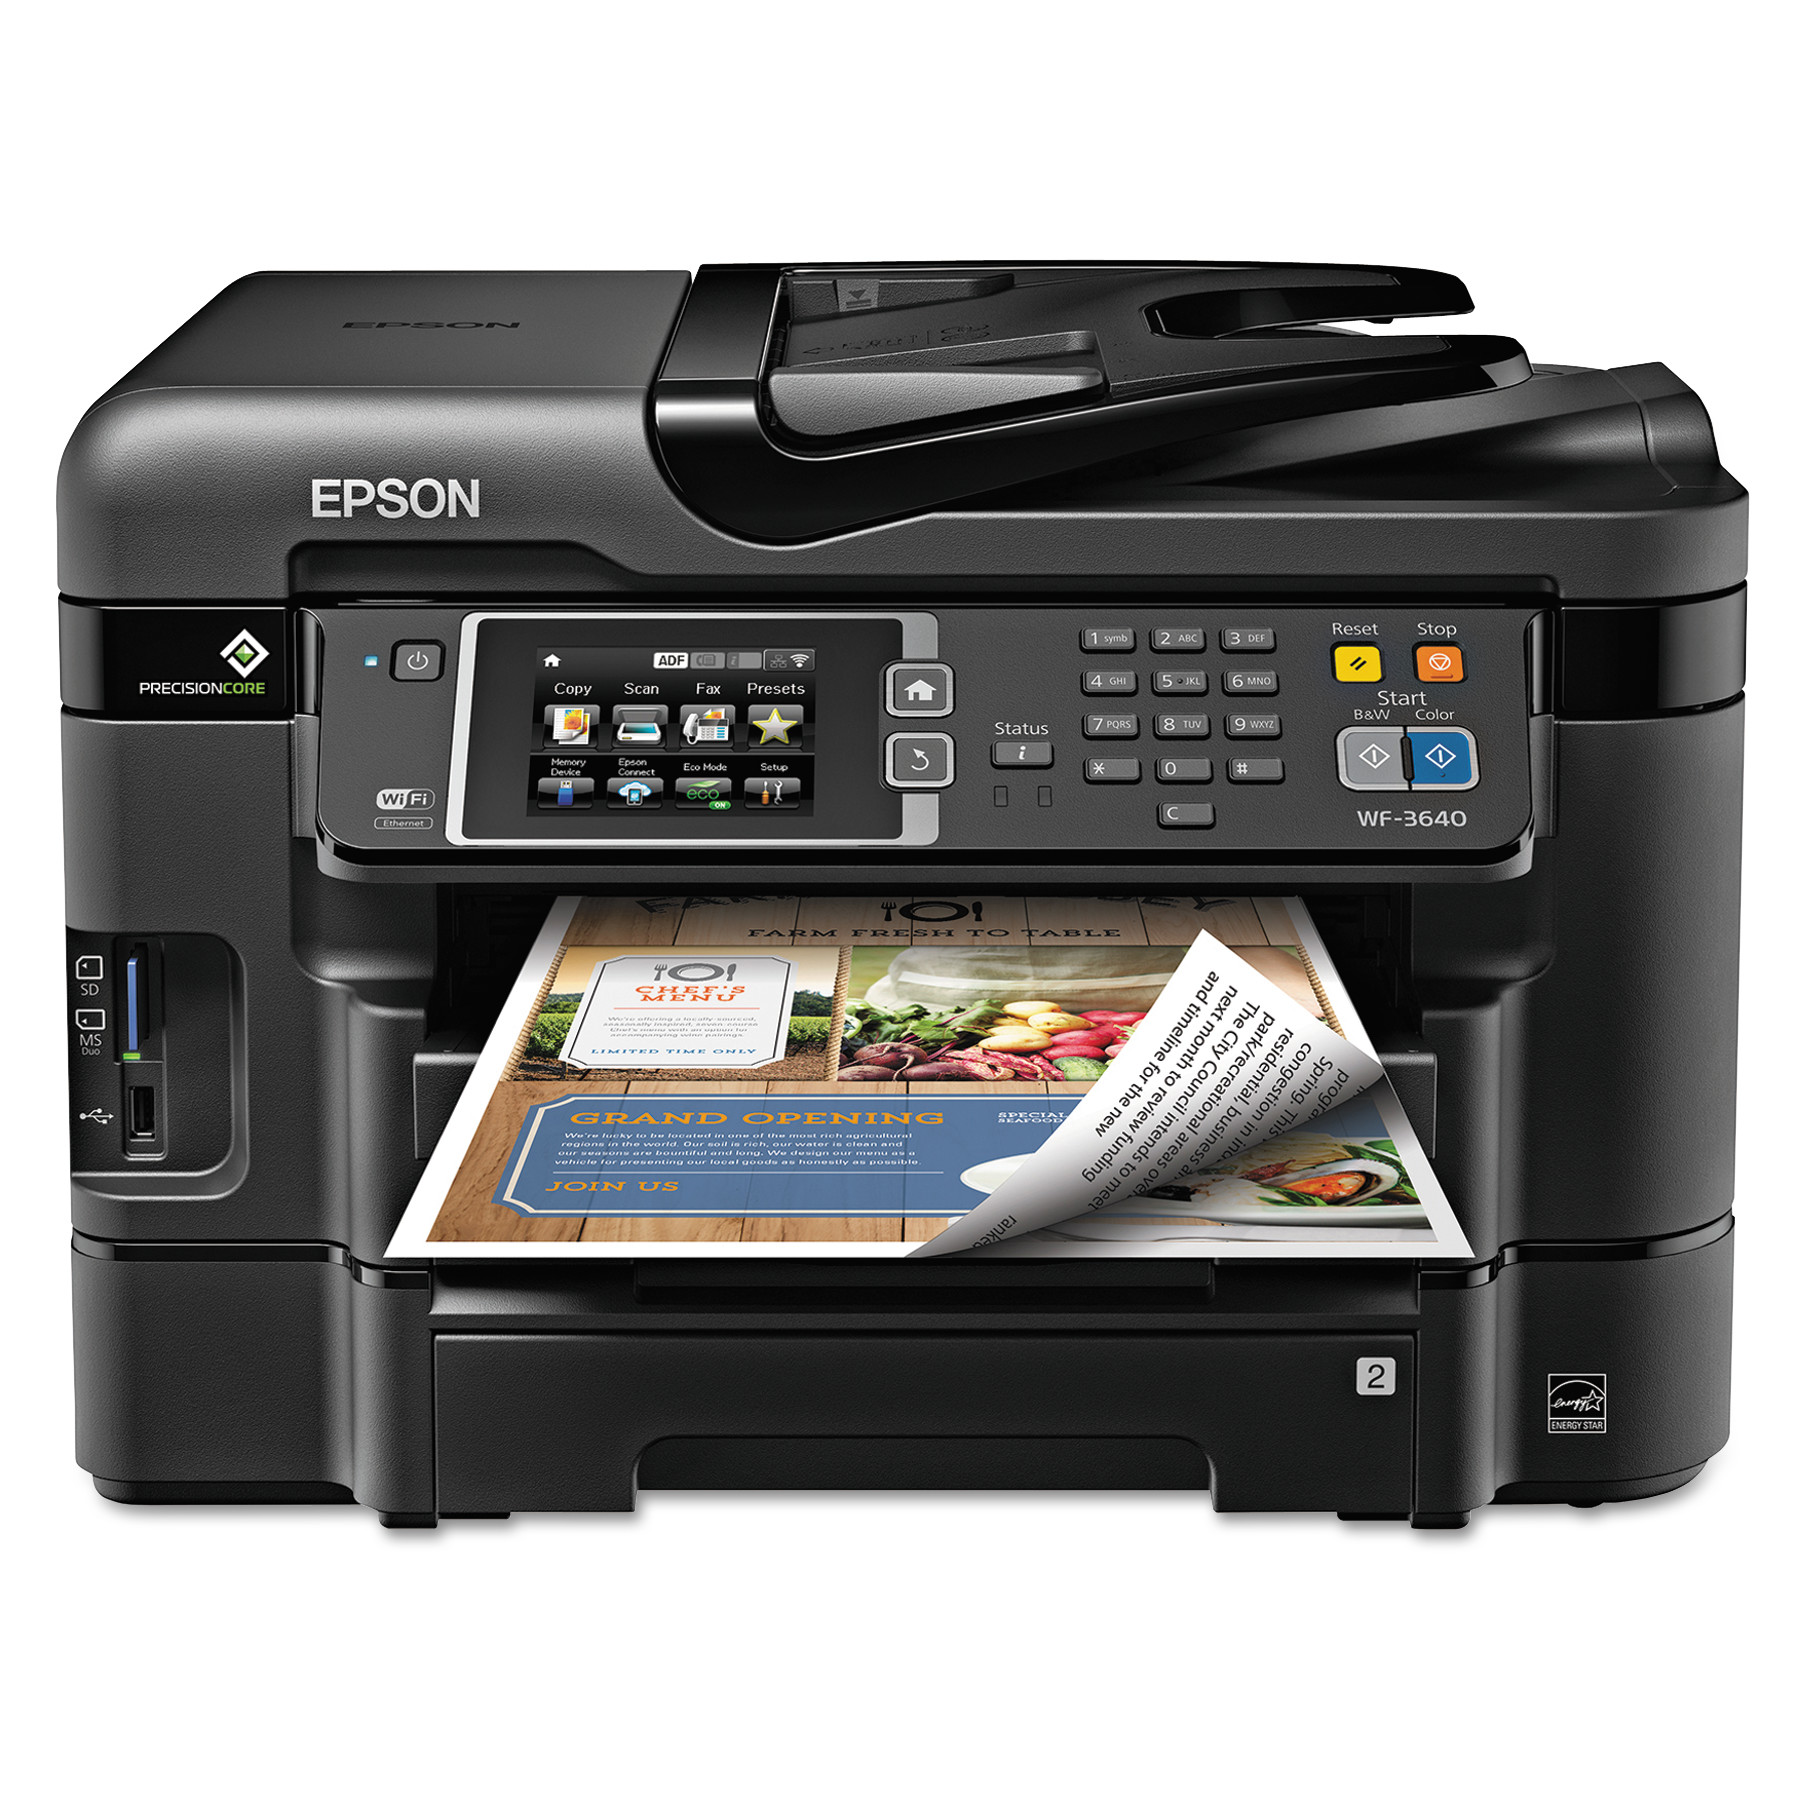 Epson WorkForce WF-3640 All-in-One Printer